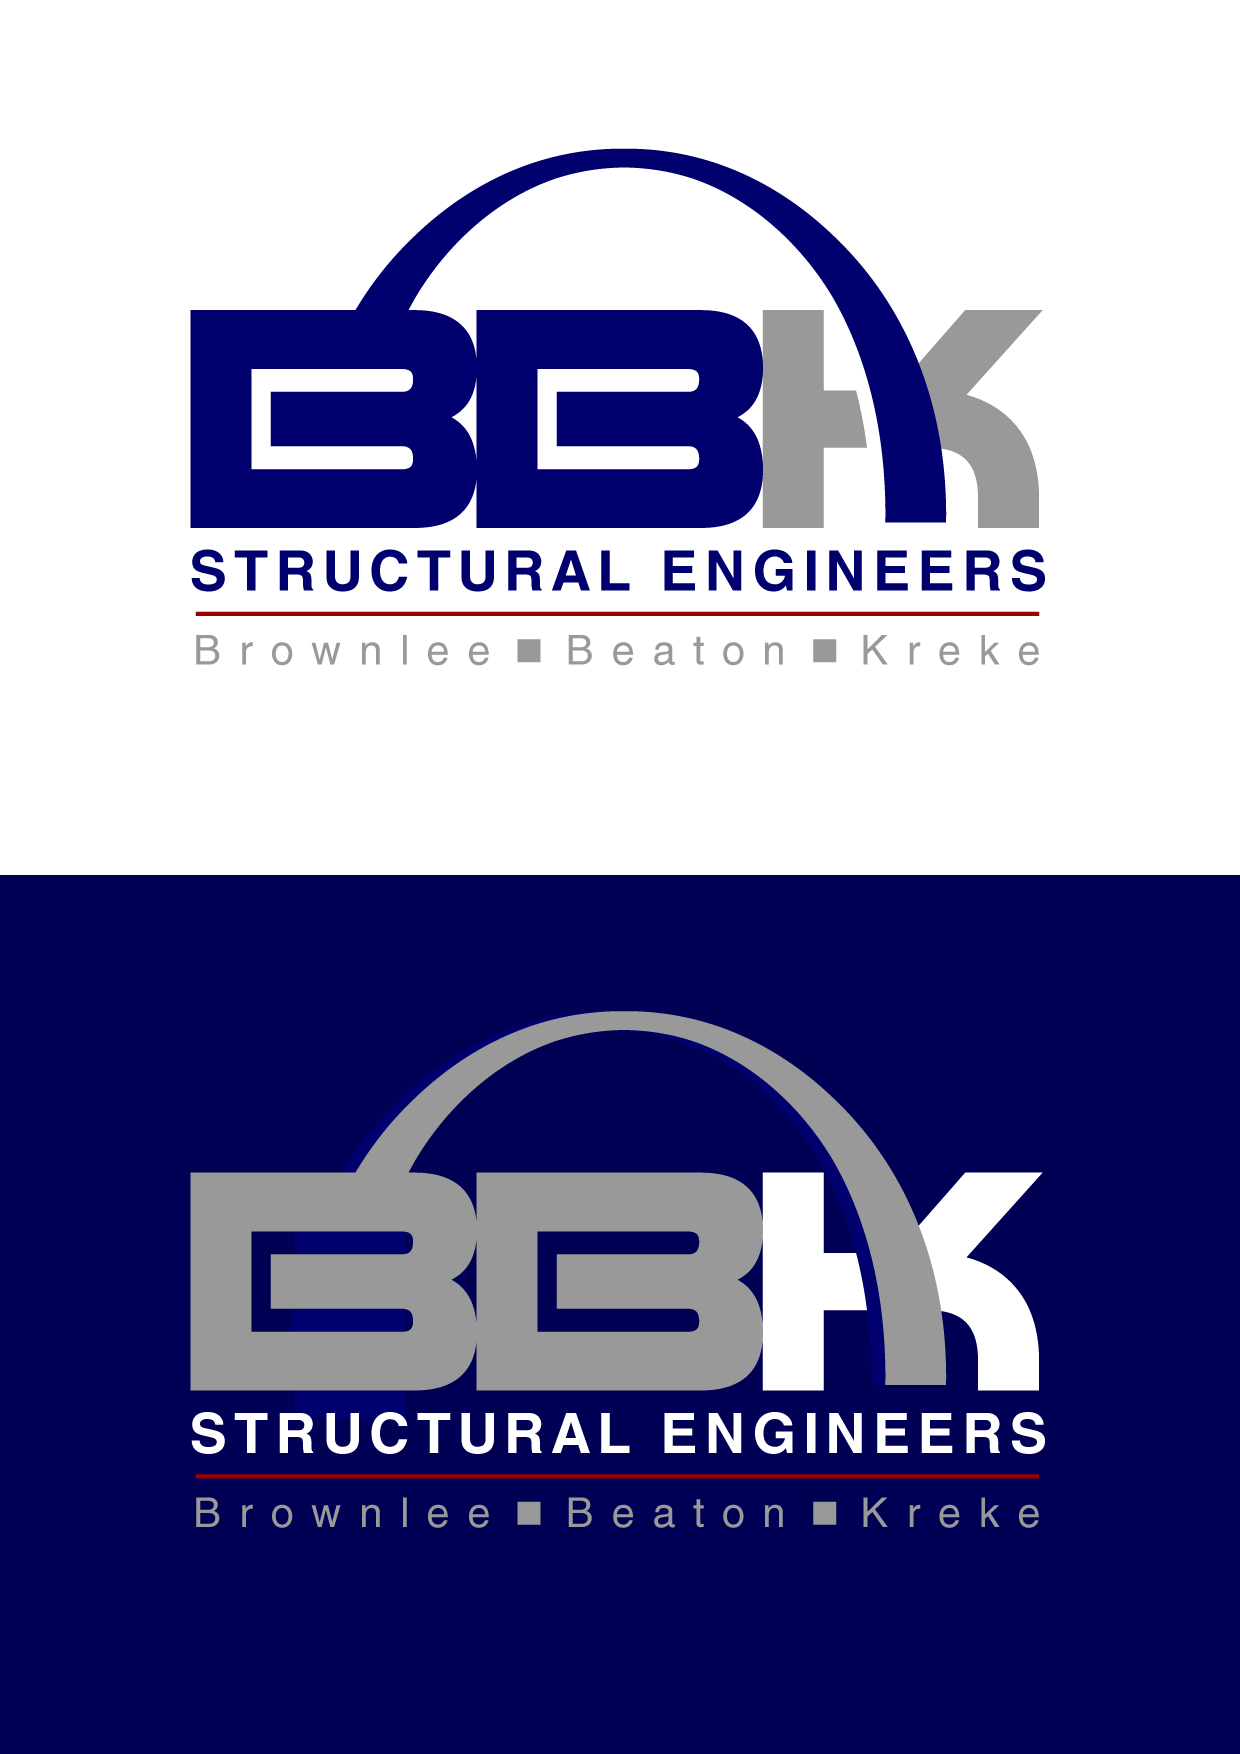 Logo Design by Wilfredo Mendoza - Entry No. 157 in the Logo Design Contest Logo Design Needed for Exciting New Company BBK Consulting Engineers.